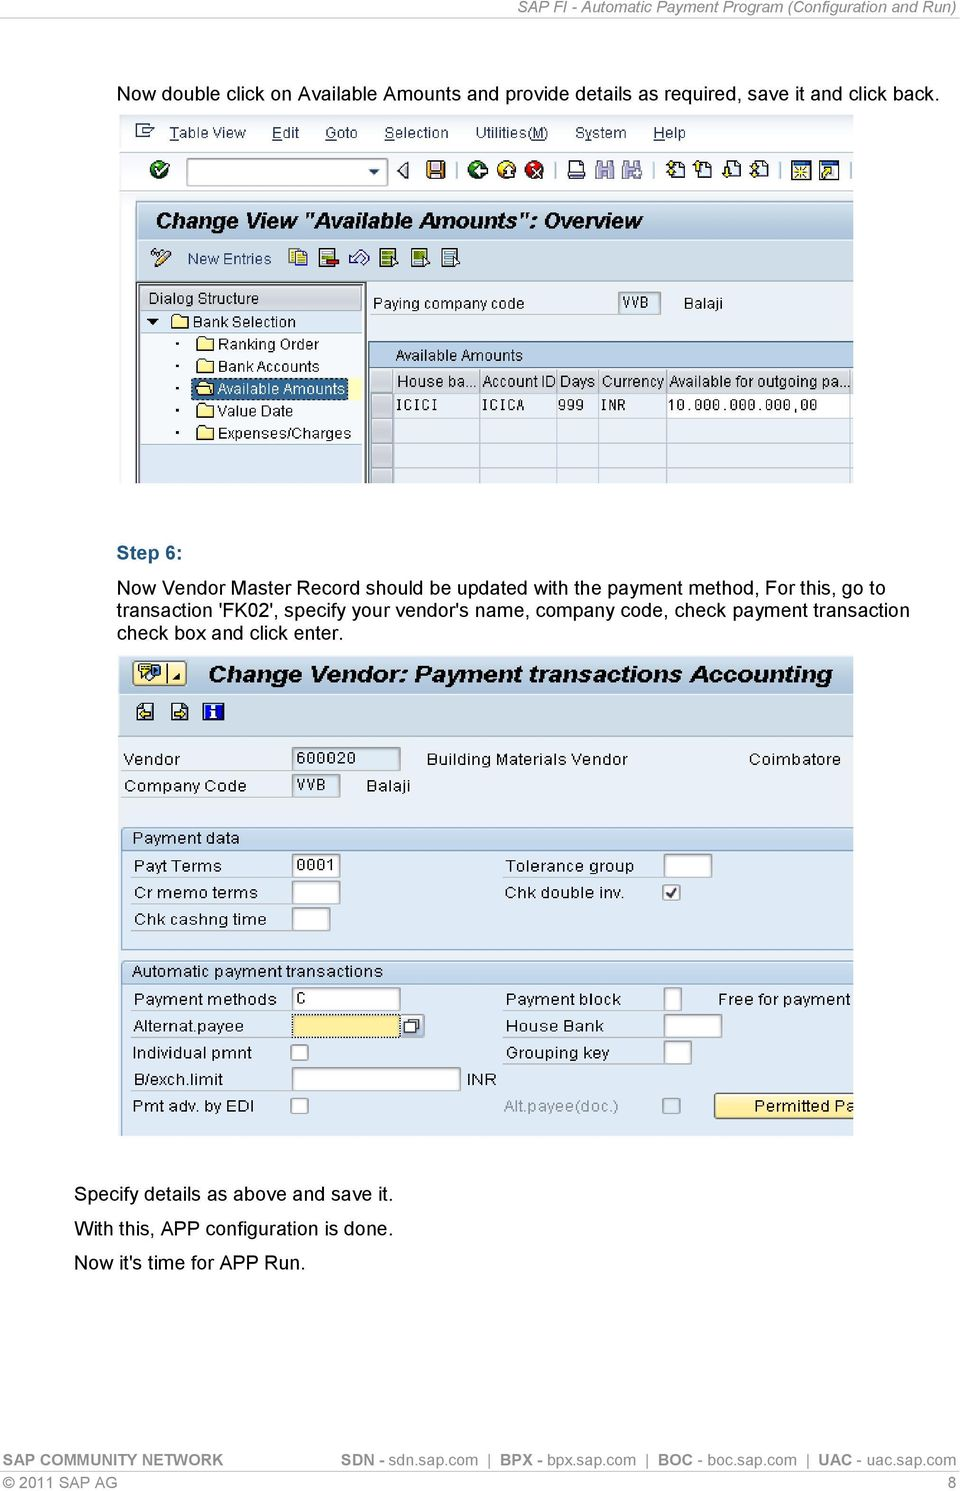 SAP FI - Automatic Payment Program (Configuration and Run) - PDF